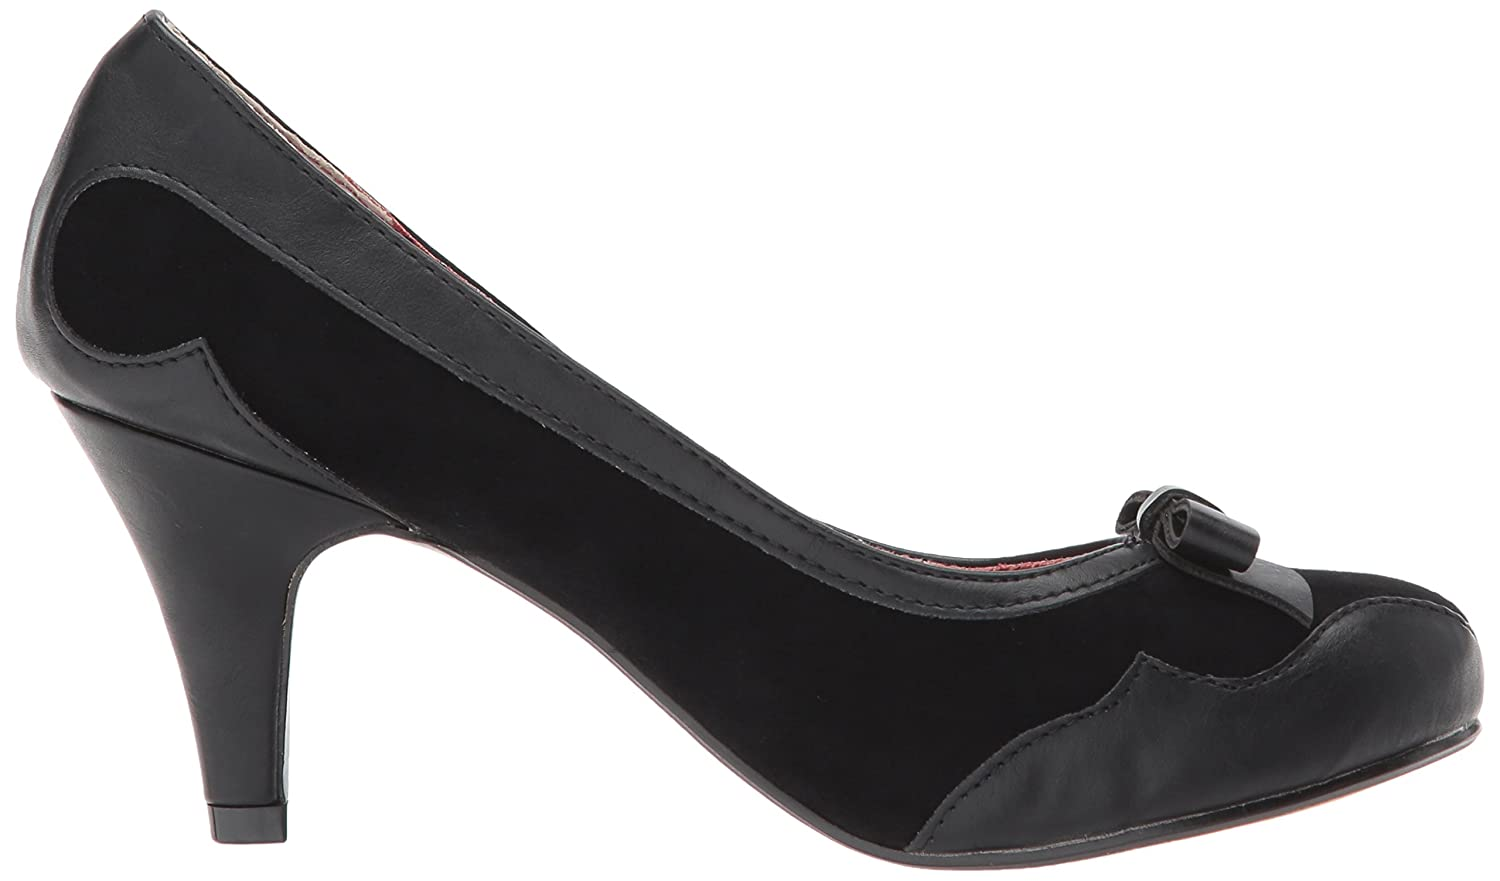 Bettie Page Women's Bp310-Jolie Spectator US|Black Pump B06ZZCDFM3 10 B(M) US|Black Spectator 8d4e18